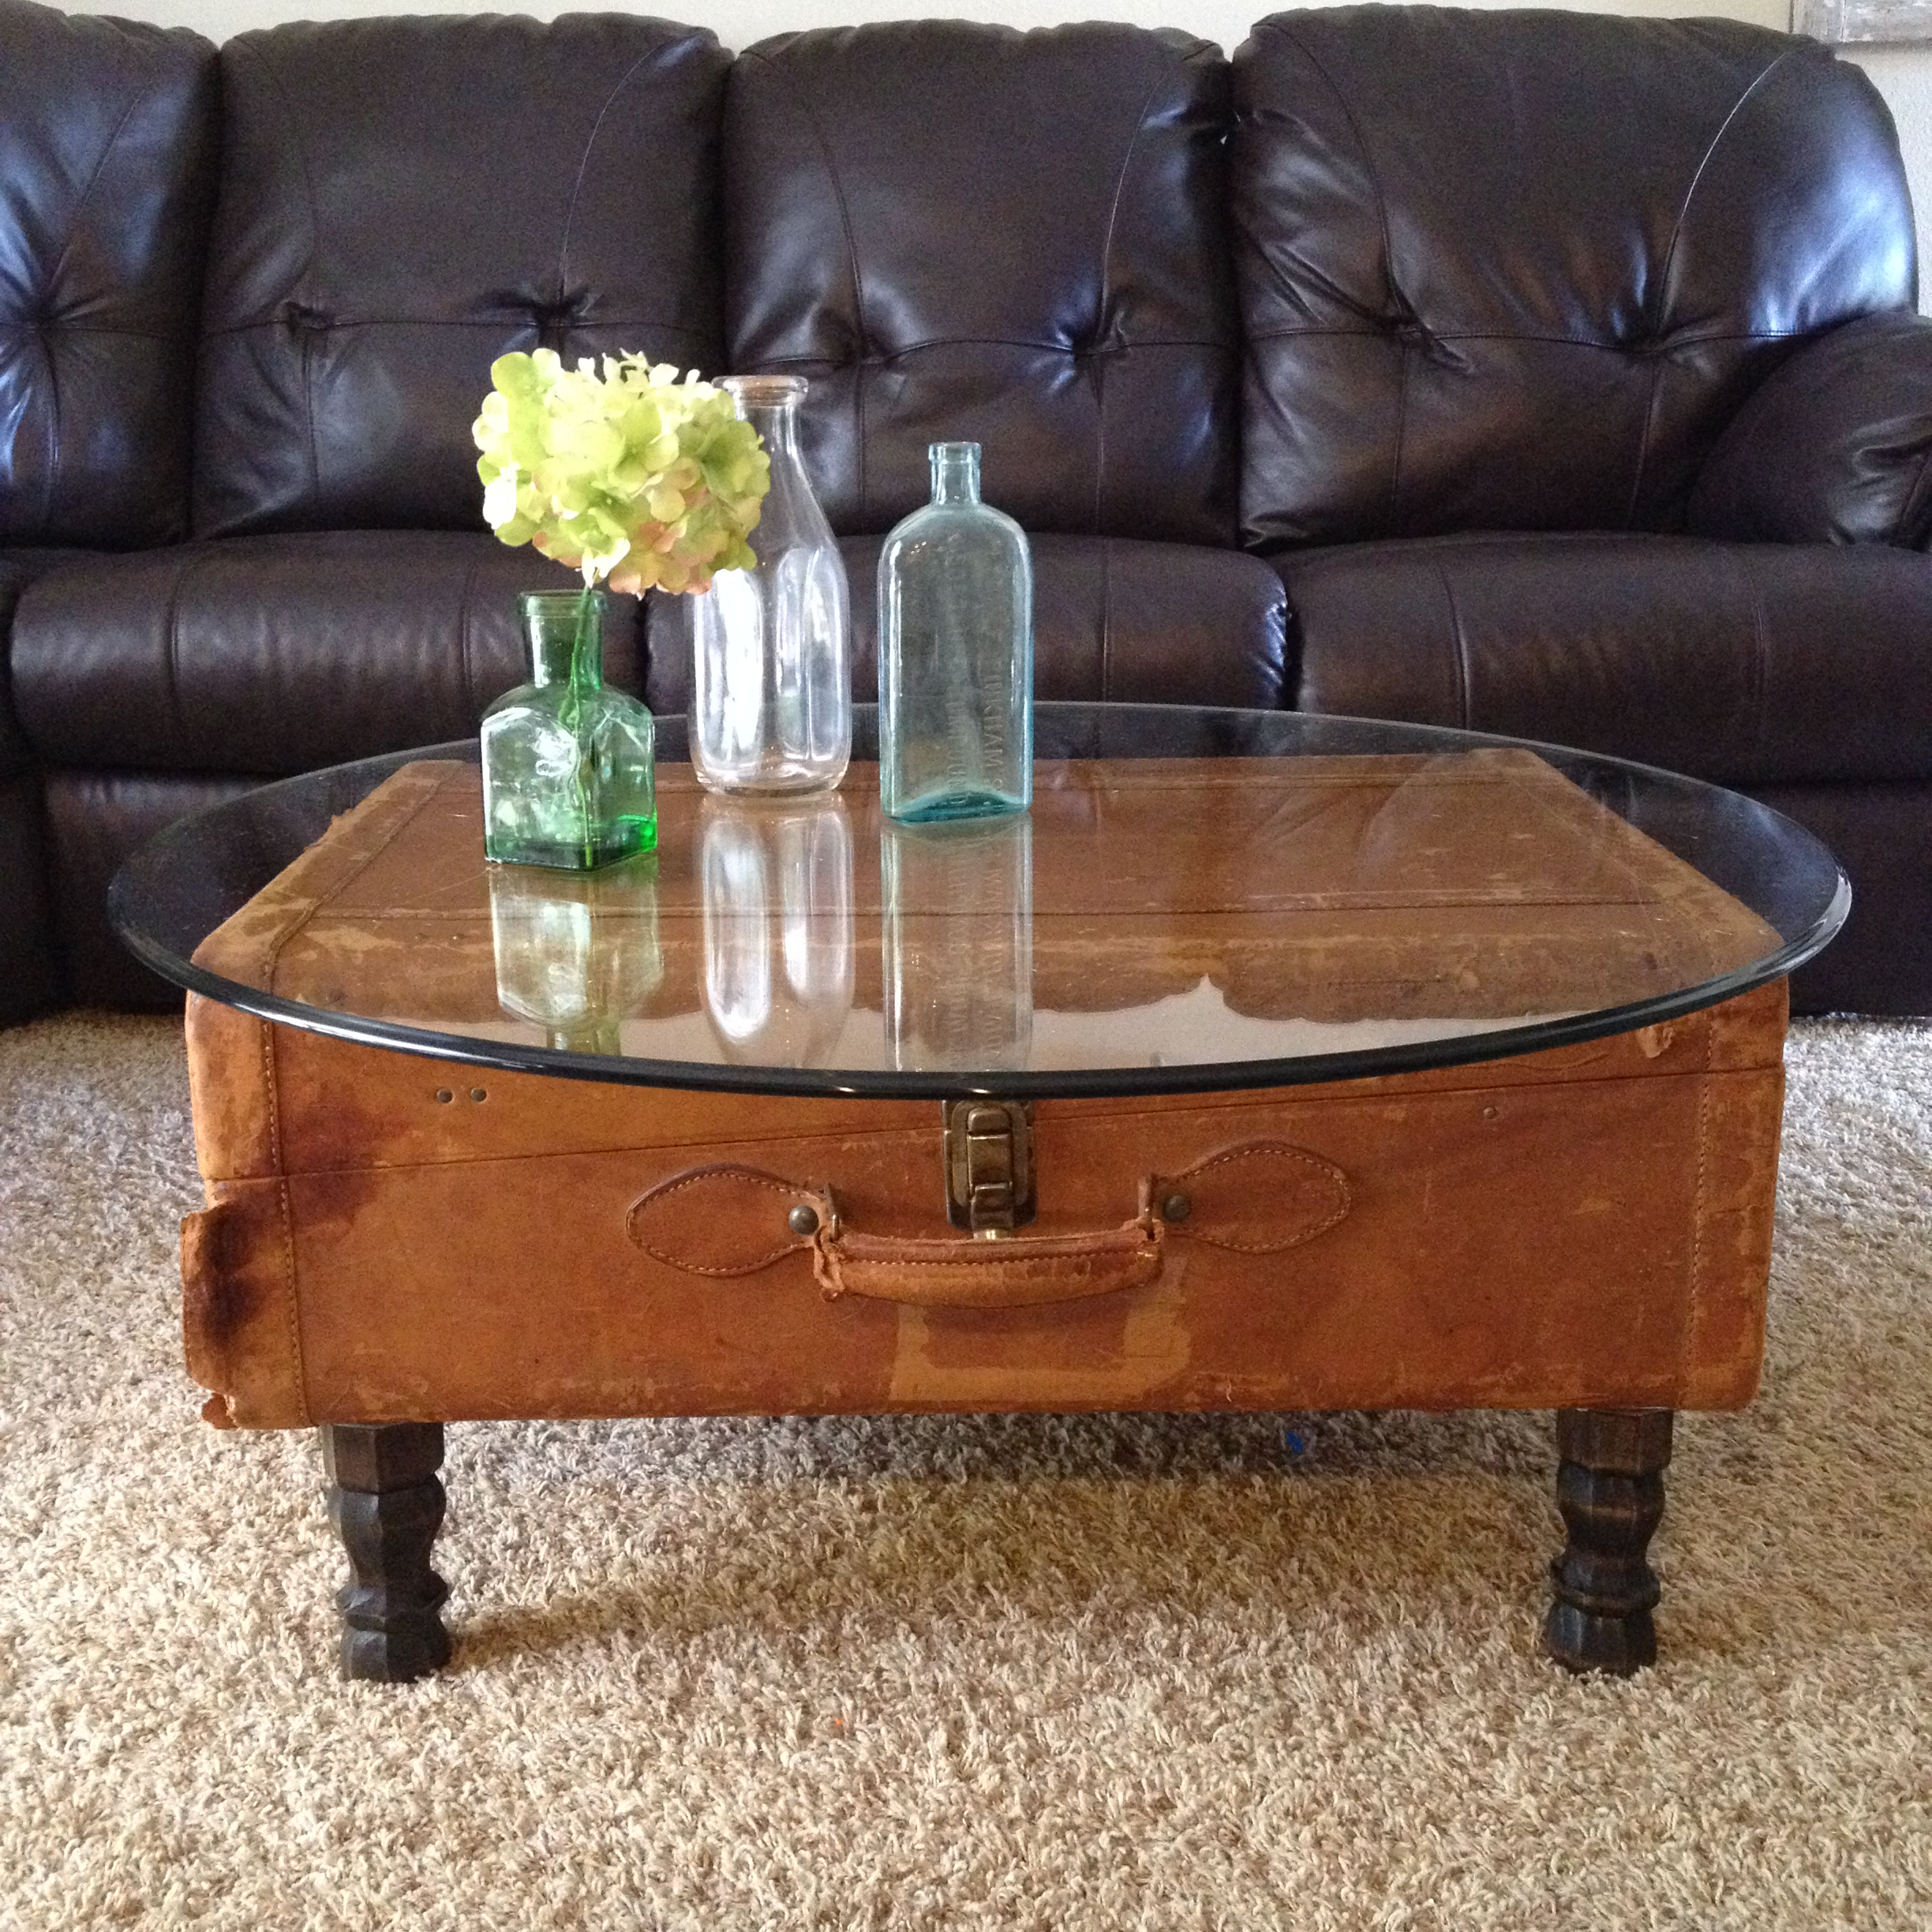 Antique Round Leather Top Coffee Table: Vintage Leather Suitcase Coffee Table